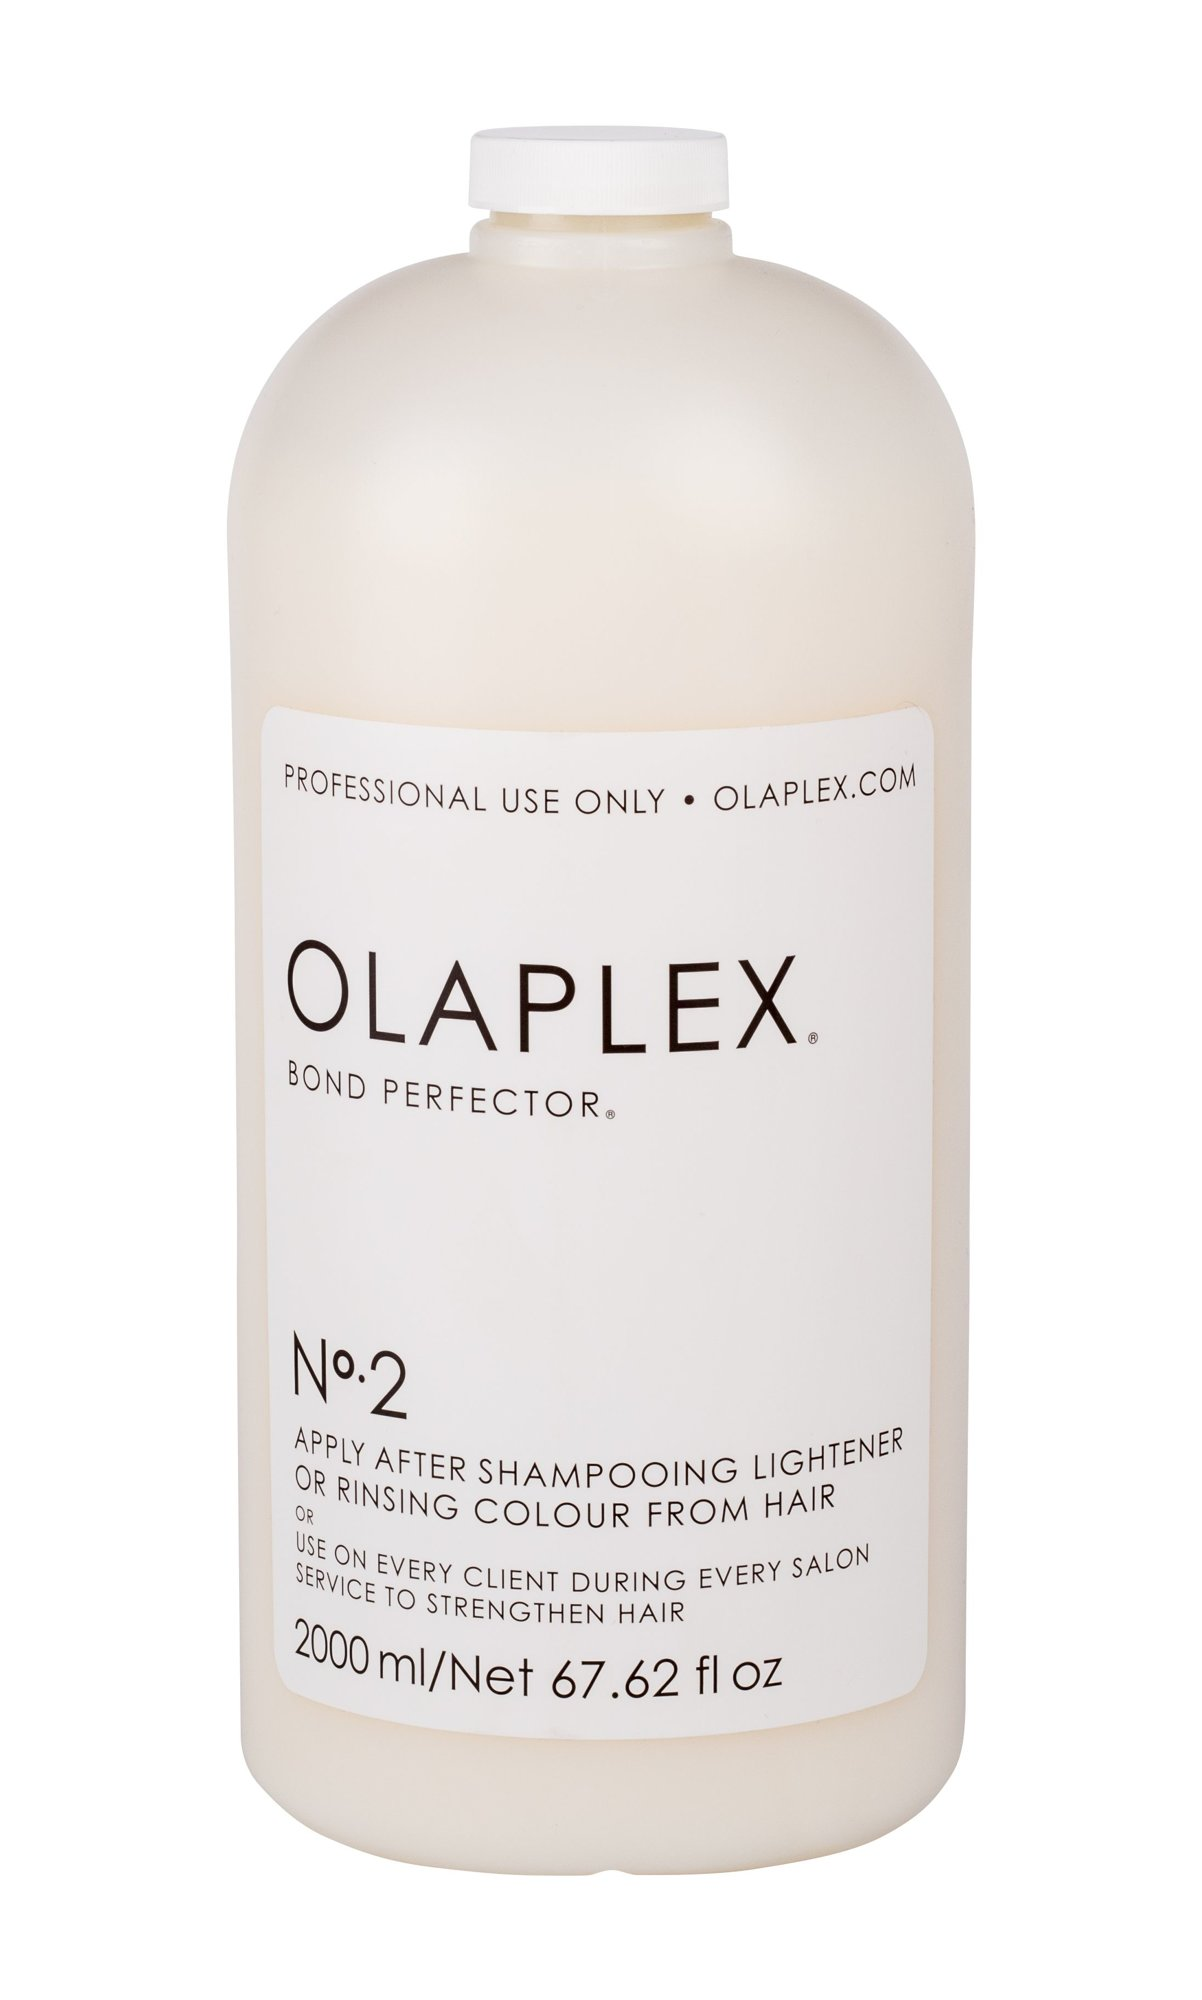 Olaplex Bond Perfector No. 2 Hair Color 100ml